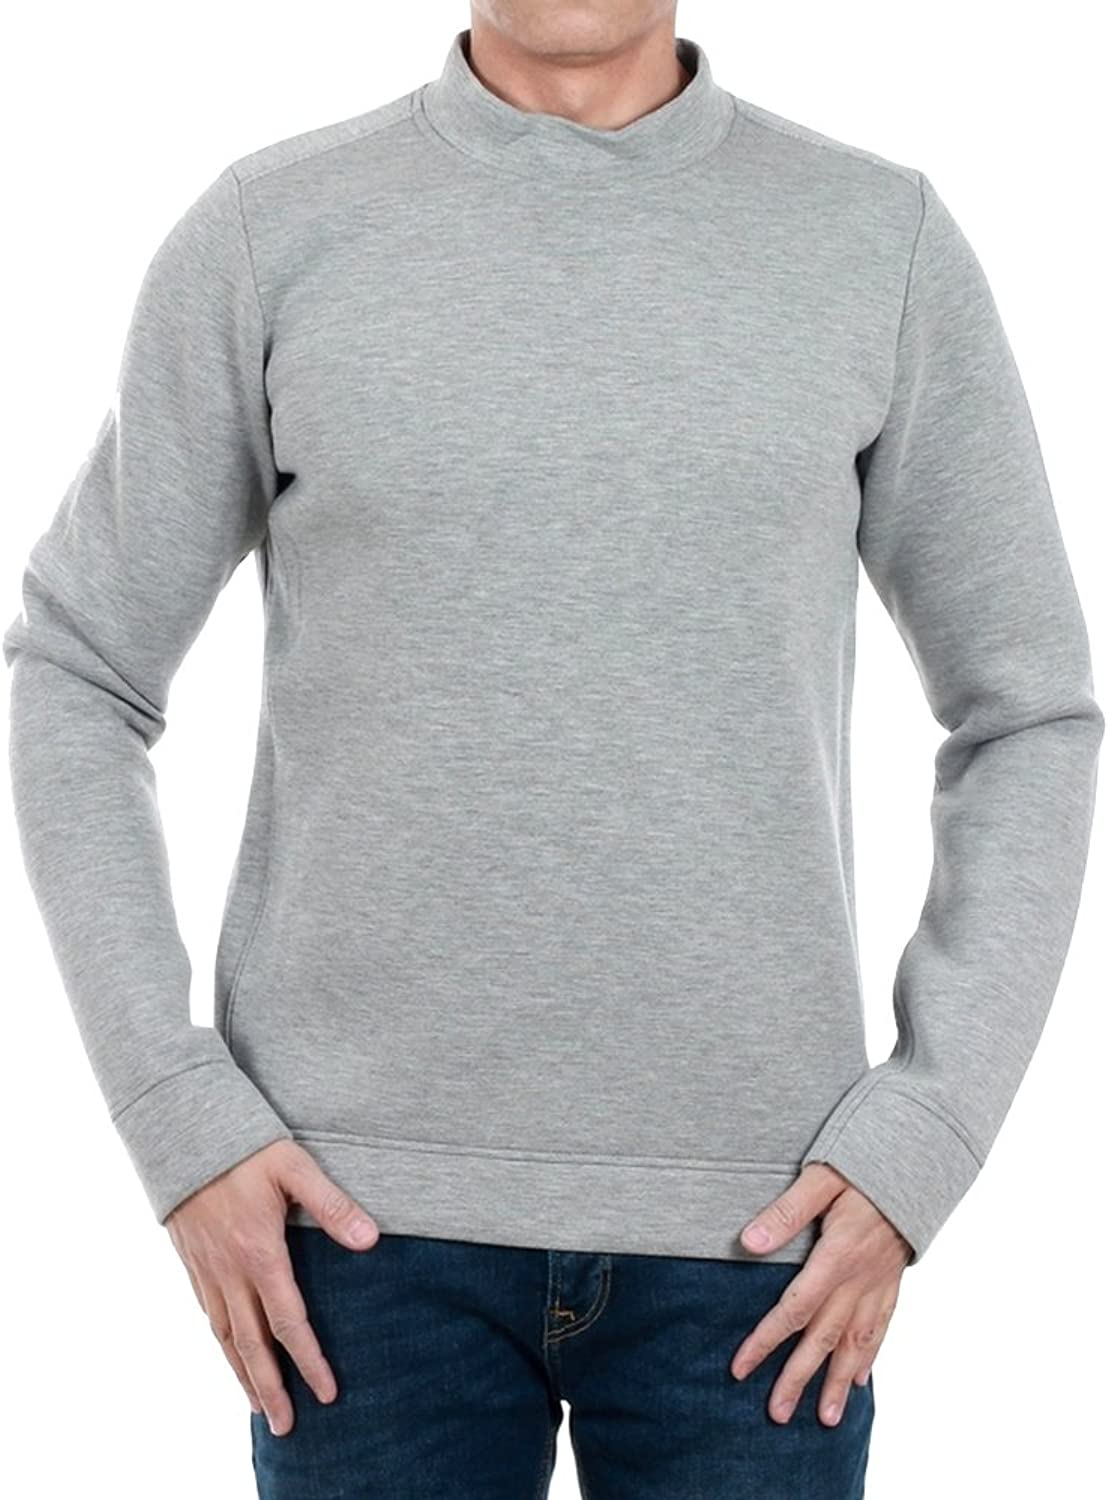 JACK & JONES Sweatshirt Herren Langarm Grau 12137128 JPRMAROON Sweat Crew Neck FW37 Light grau Melange